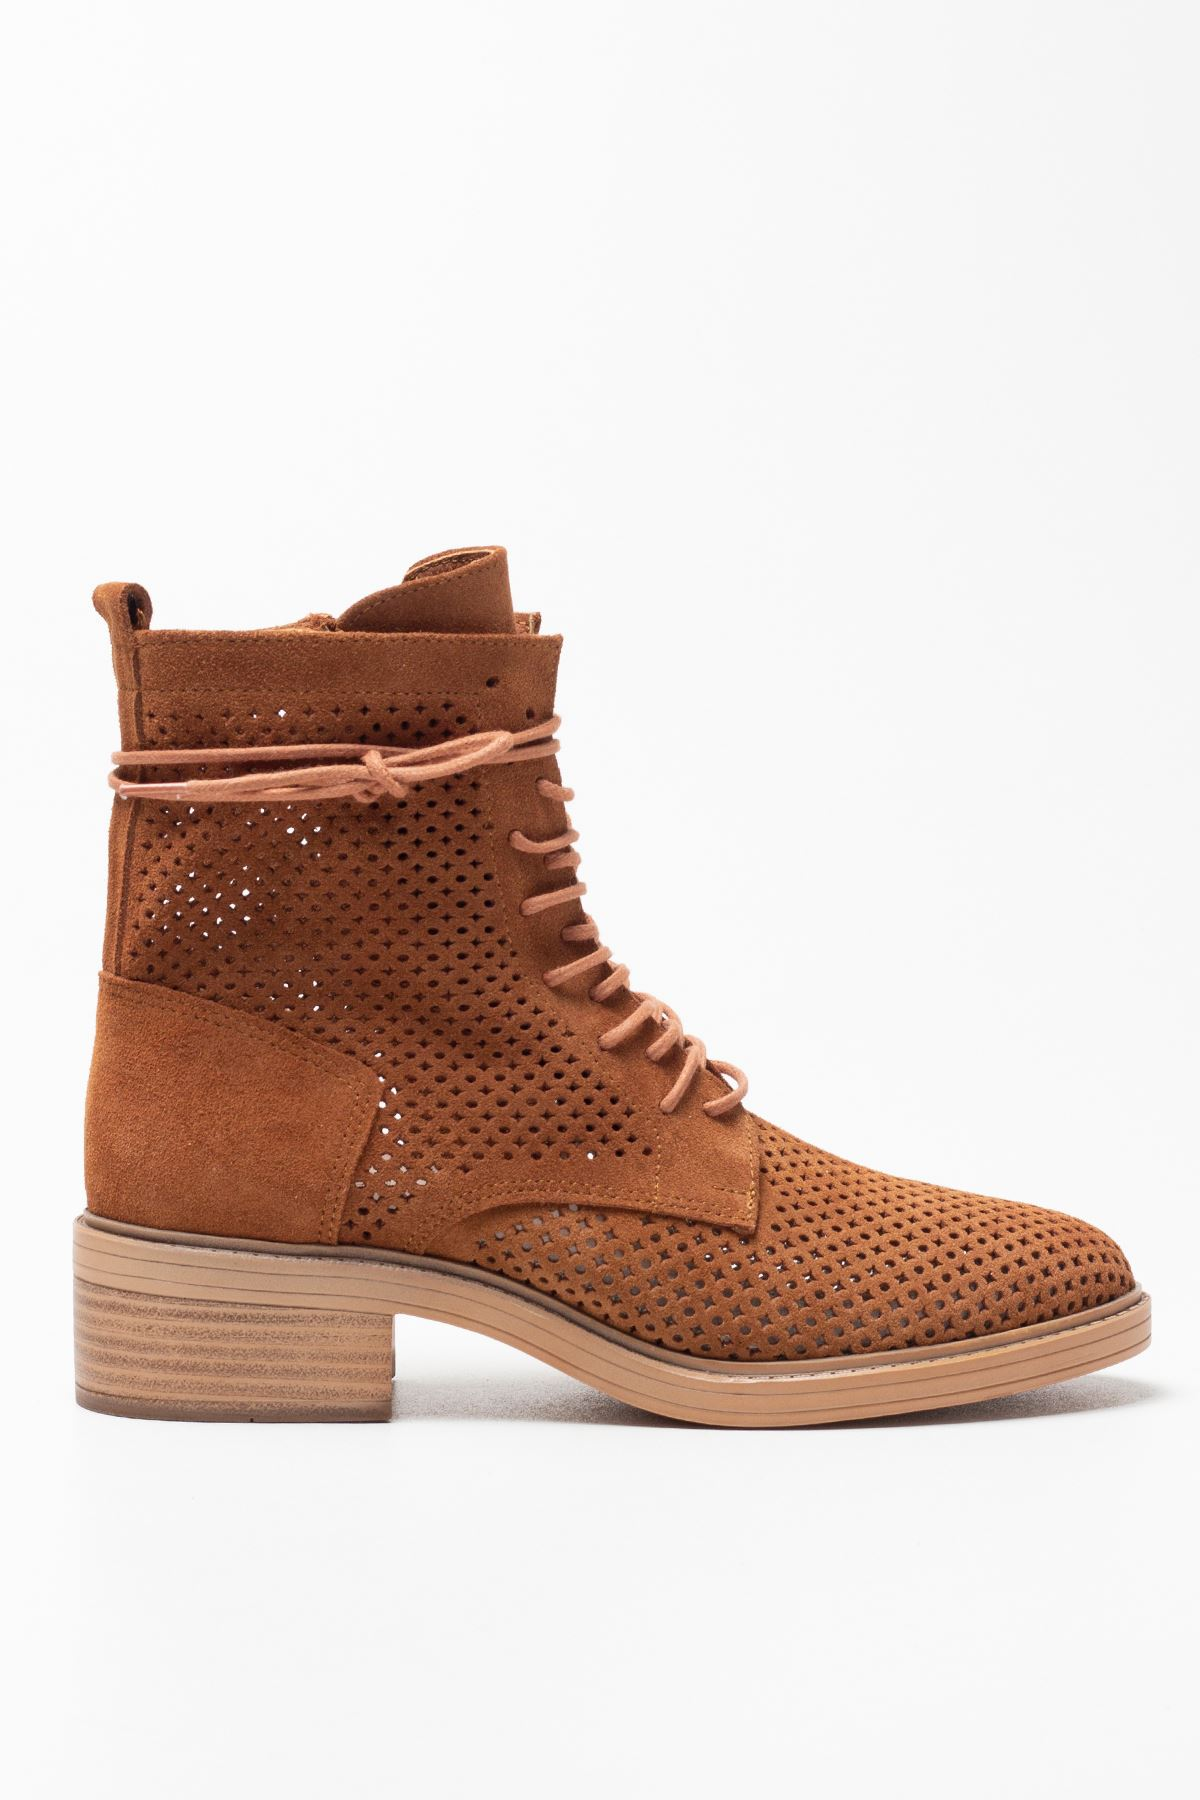 Becca Tan Genuine Leather Women's Summer Boots